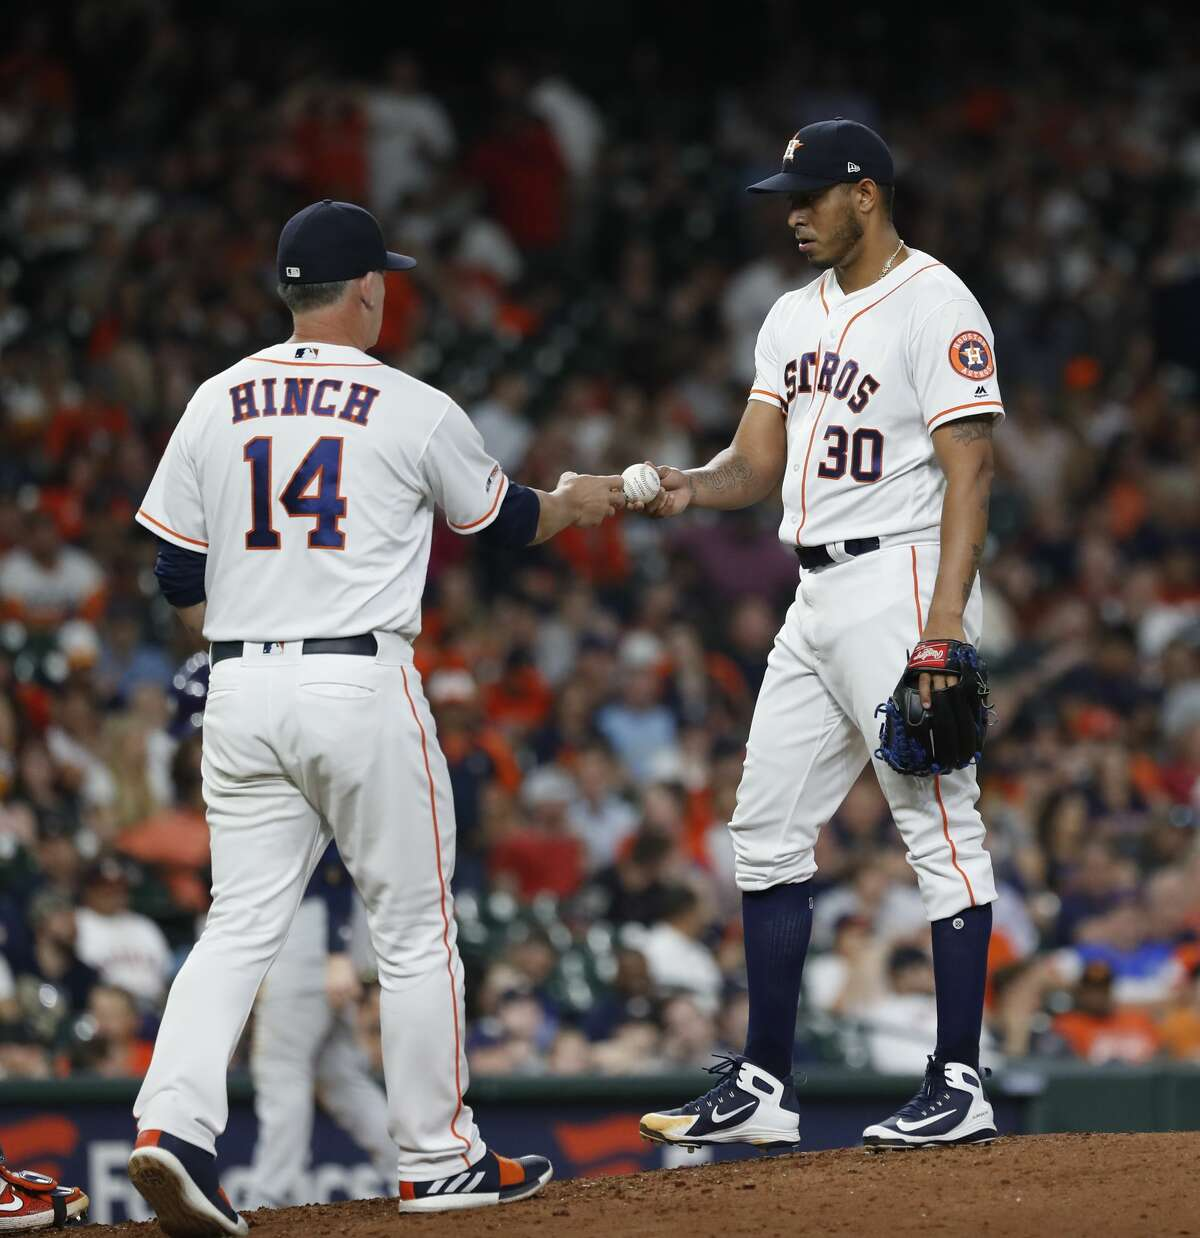 Houston Astros relief pitcher Hector Rondon (30) is pulled by manager AJ Hinch (14) after walking Milwaukee Brewers Travis Shaw with the bases loaded during the eighth inning of an MLB baseball game at Minue Maid Park, Tuesday, June 11, 2019.